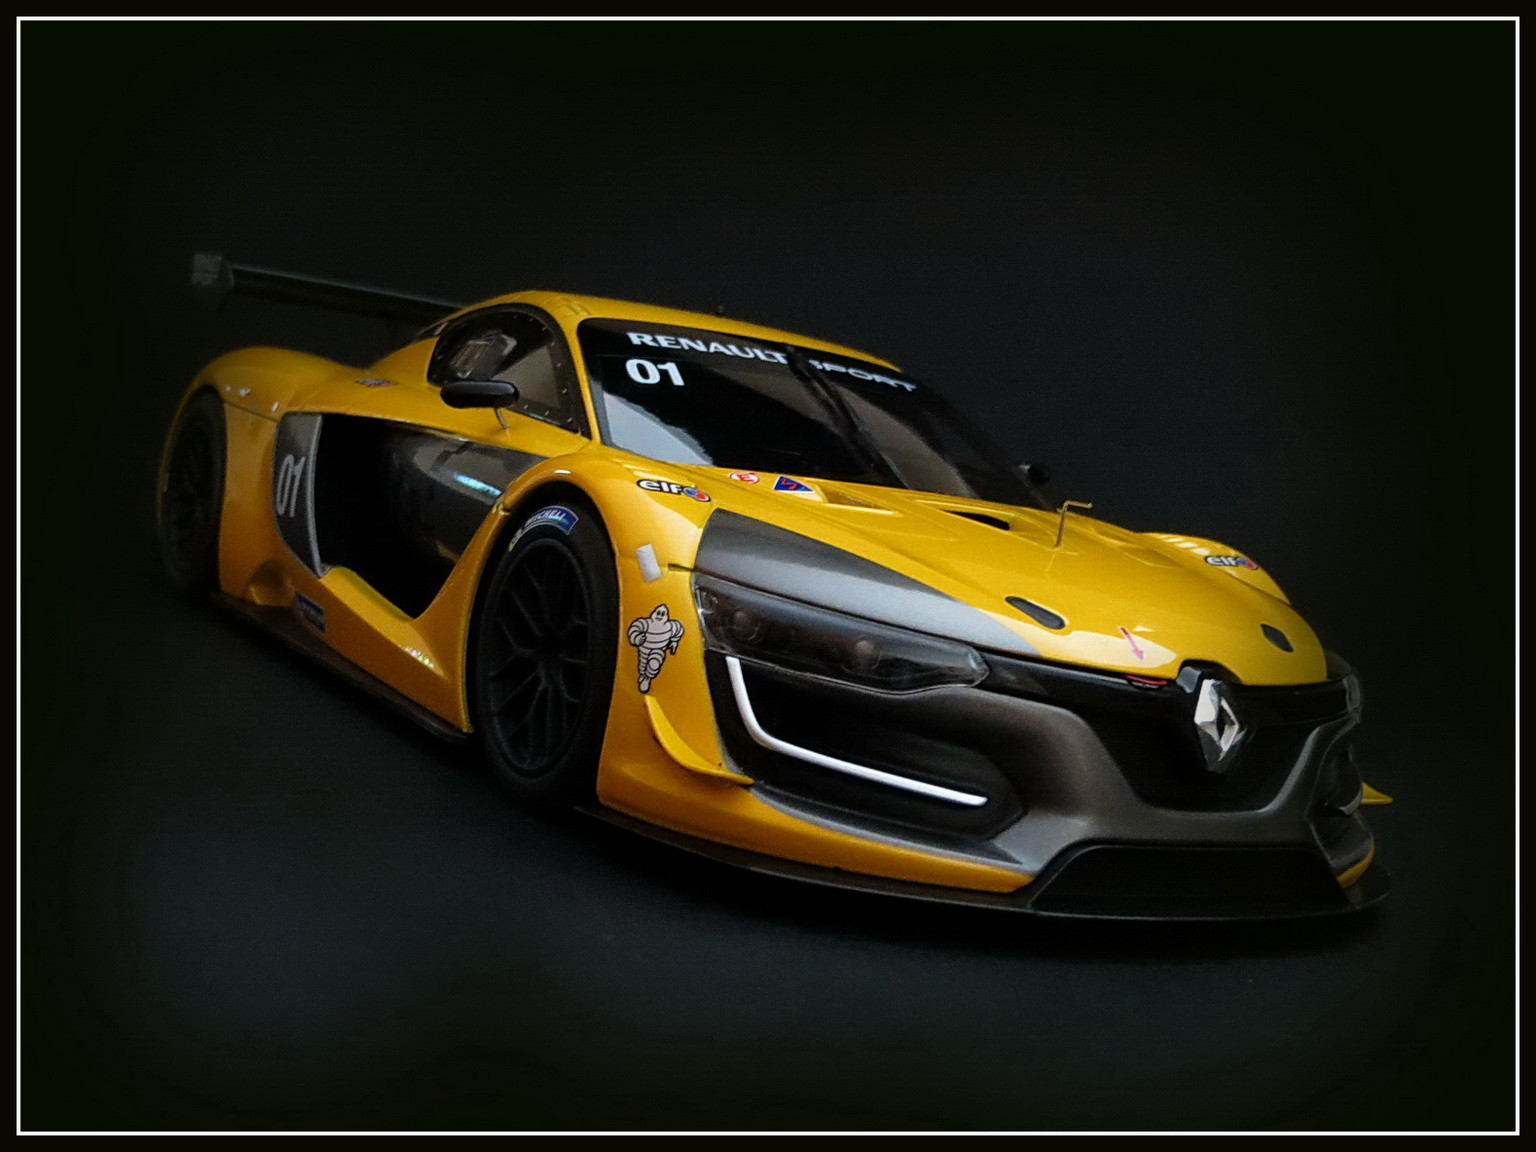 renault-rs 01-2015-001